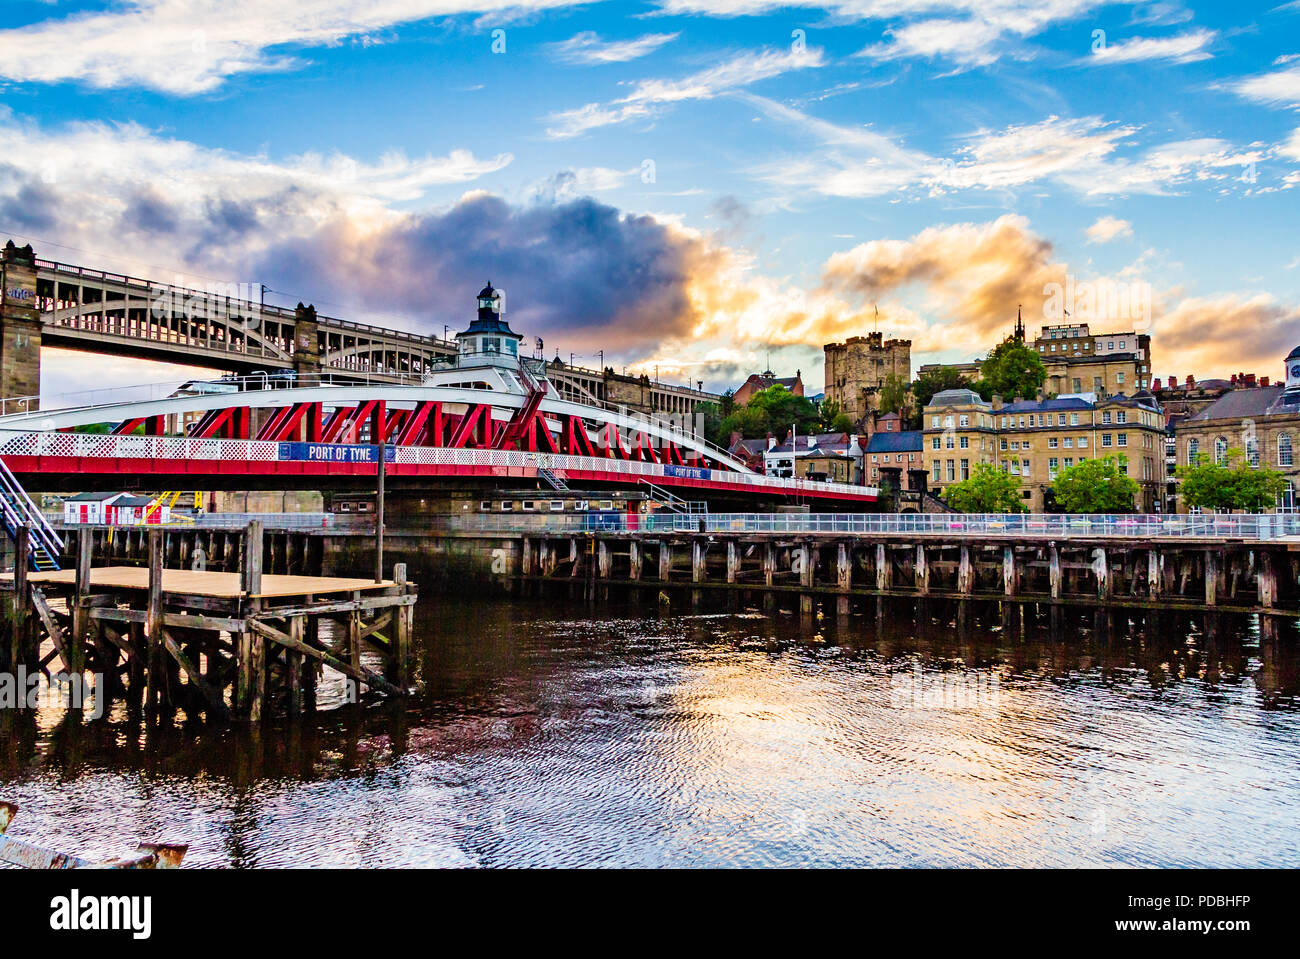 View over the River Tyne looking towards Newcastle Castle, Armstrong's swingbridge and the High Level railway bridge at sunset. Newcastle, UK. - Stock Image